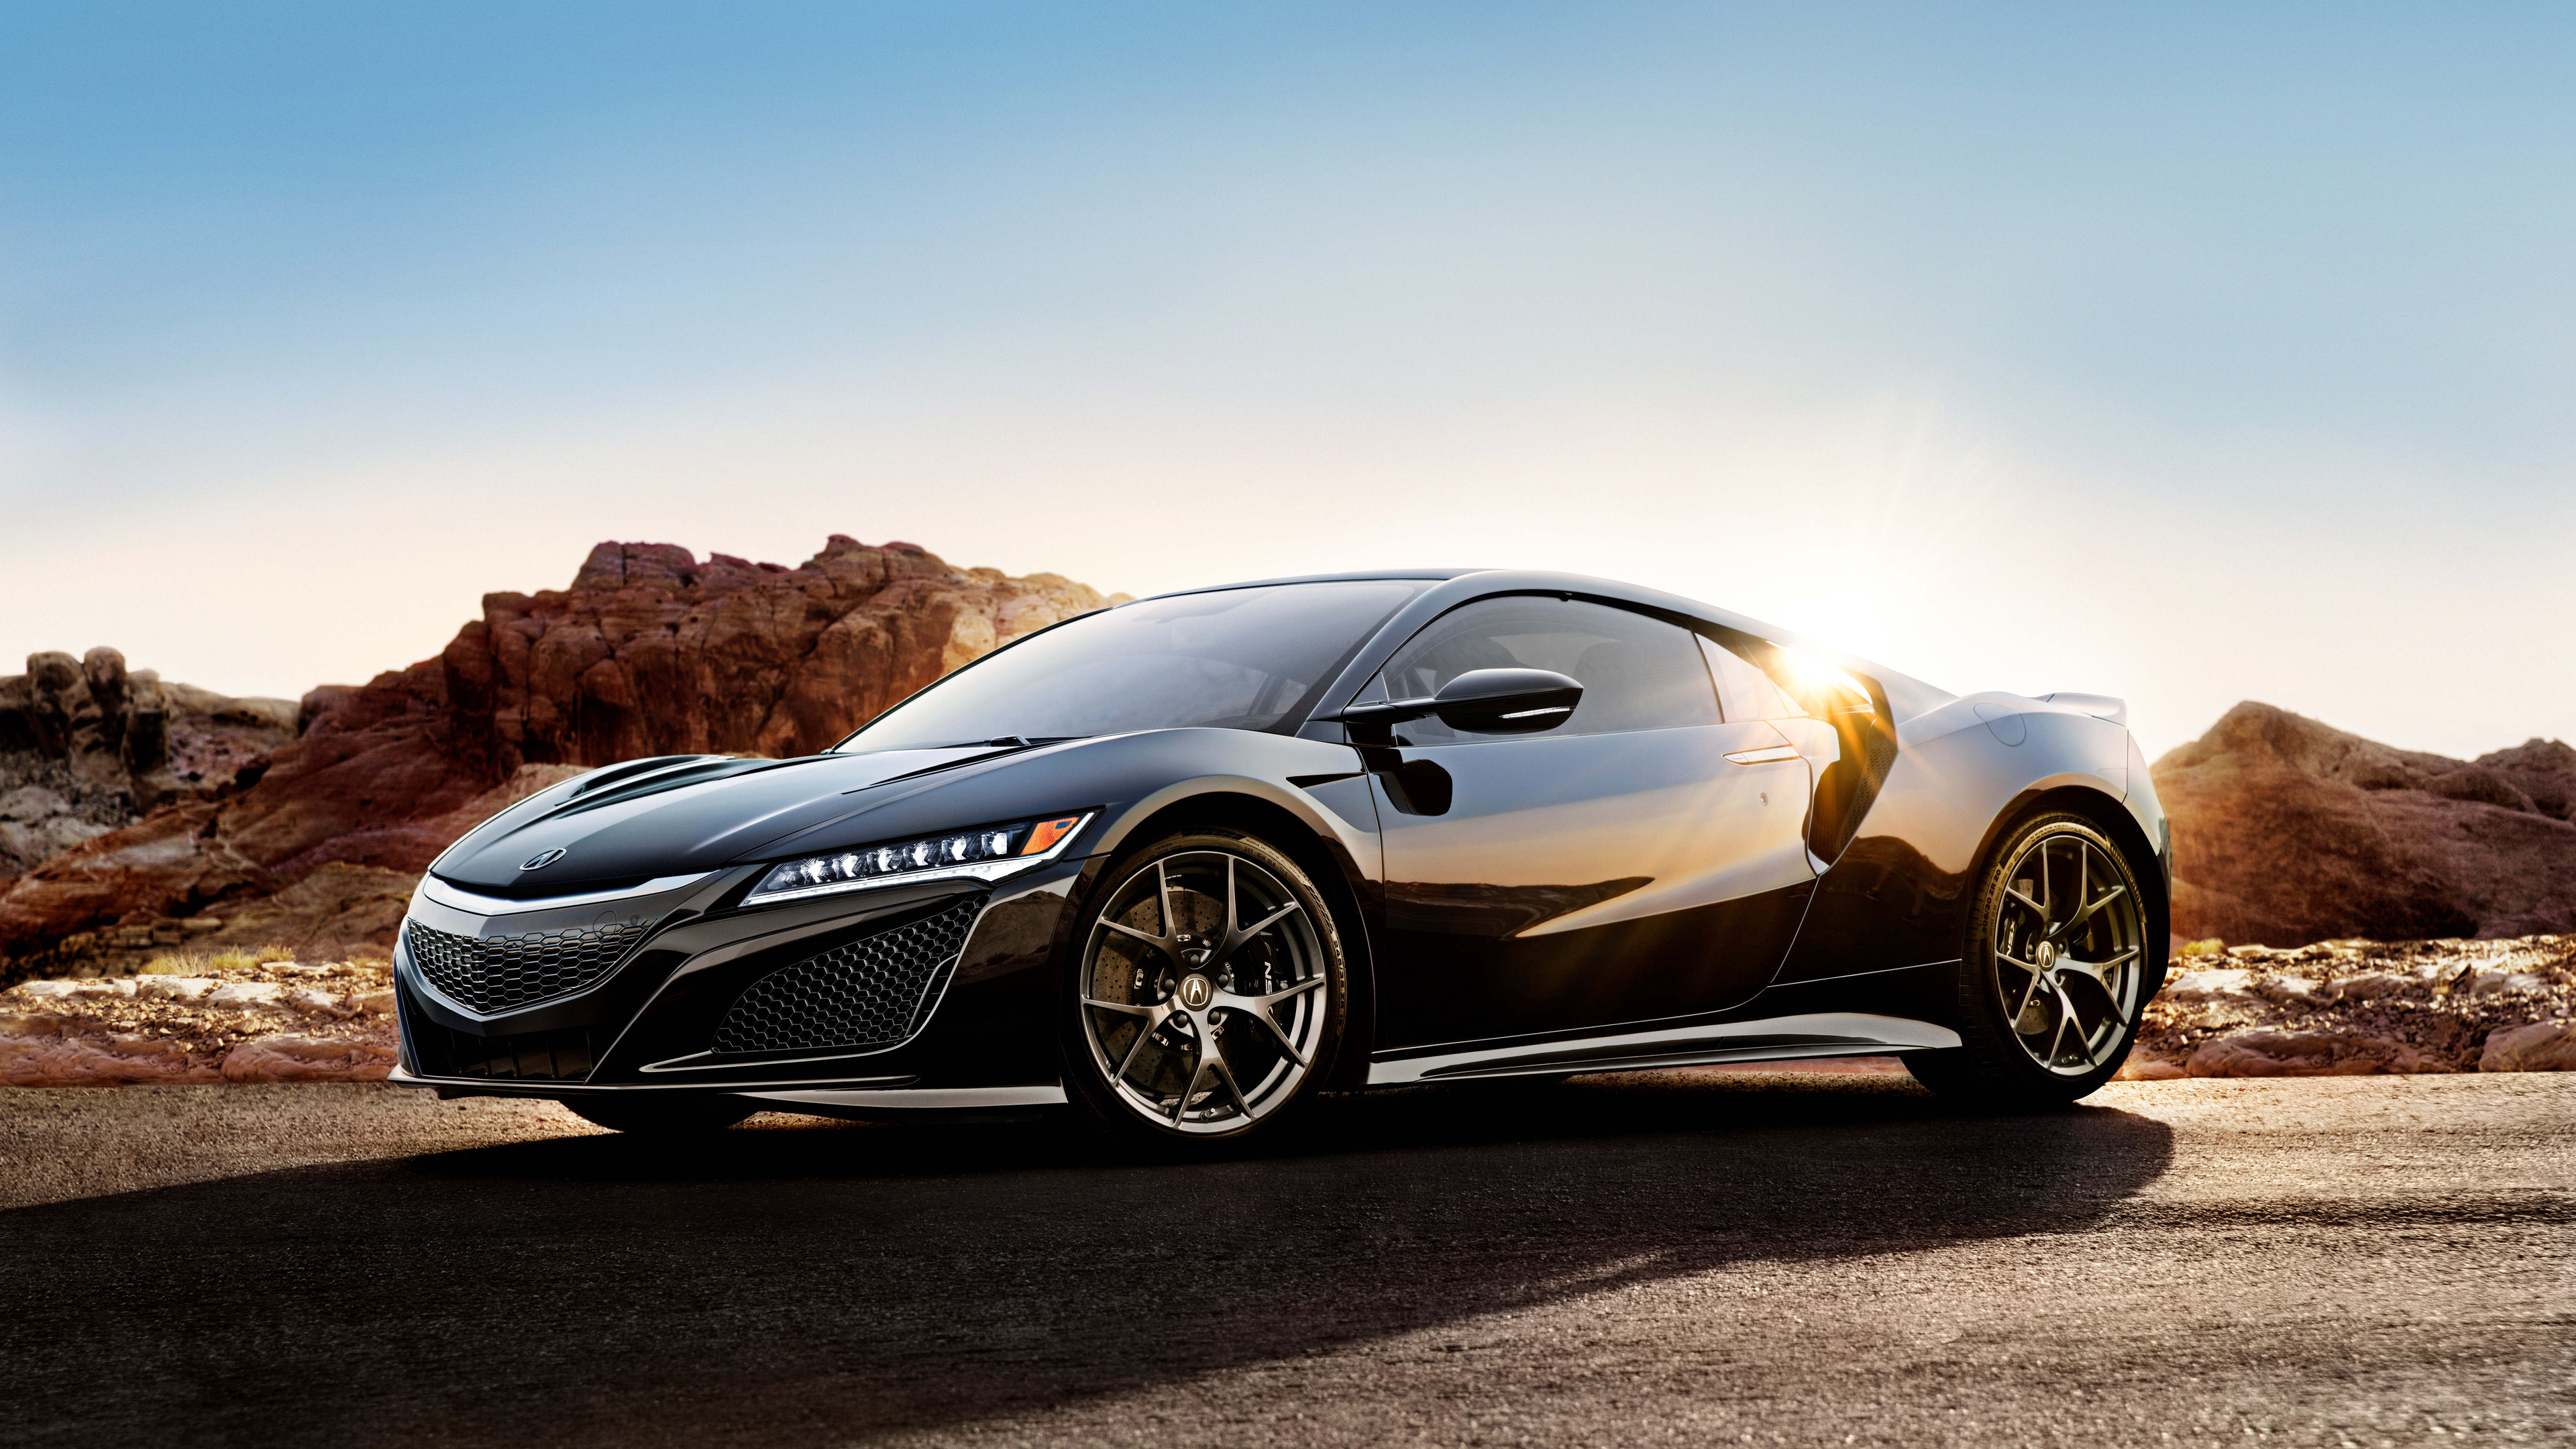 acura nsx 1562108040 - Acura NSX - hd-wallpapers, cars wallpapers, acura nsx wallpapers, 8k wallpapers, 5k wallpapers, 4k-wallpapers, 2019 cars wallpapers